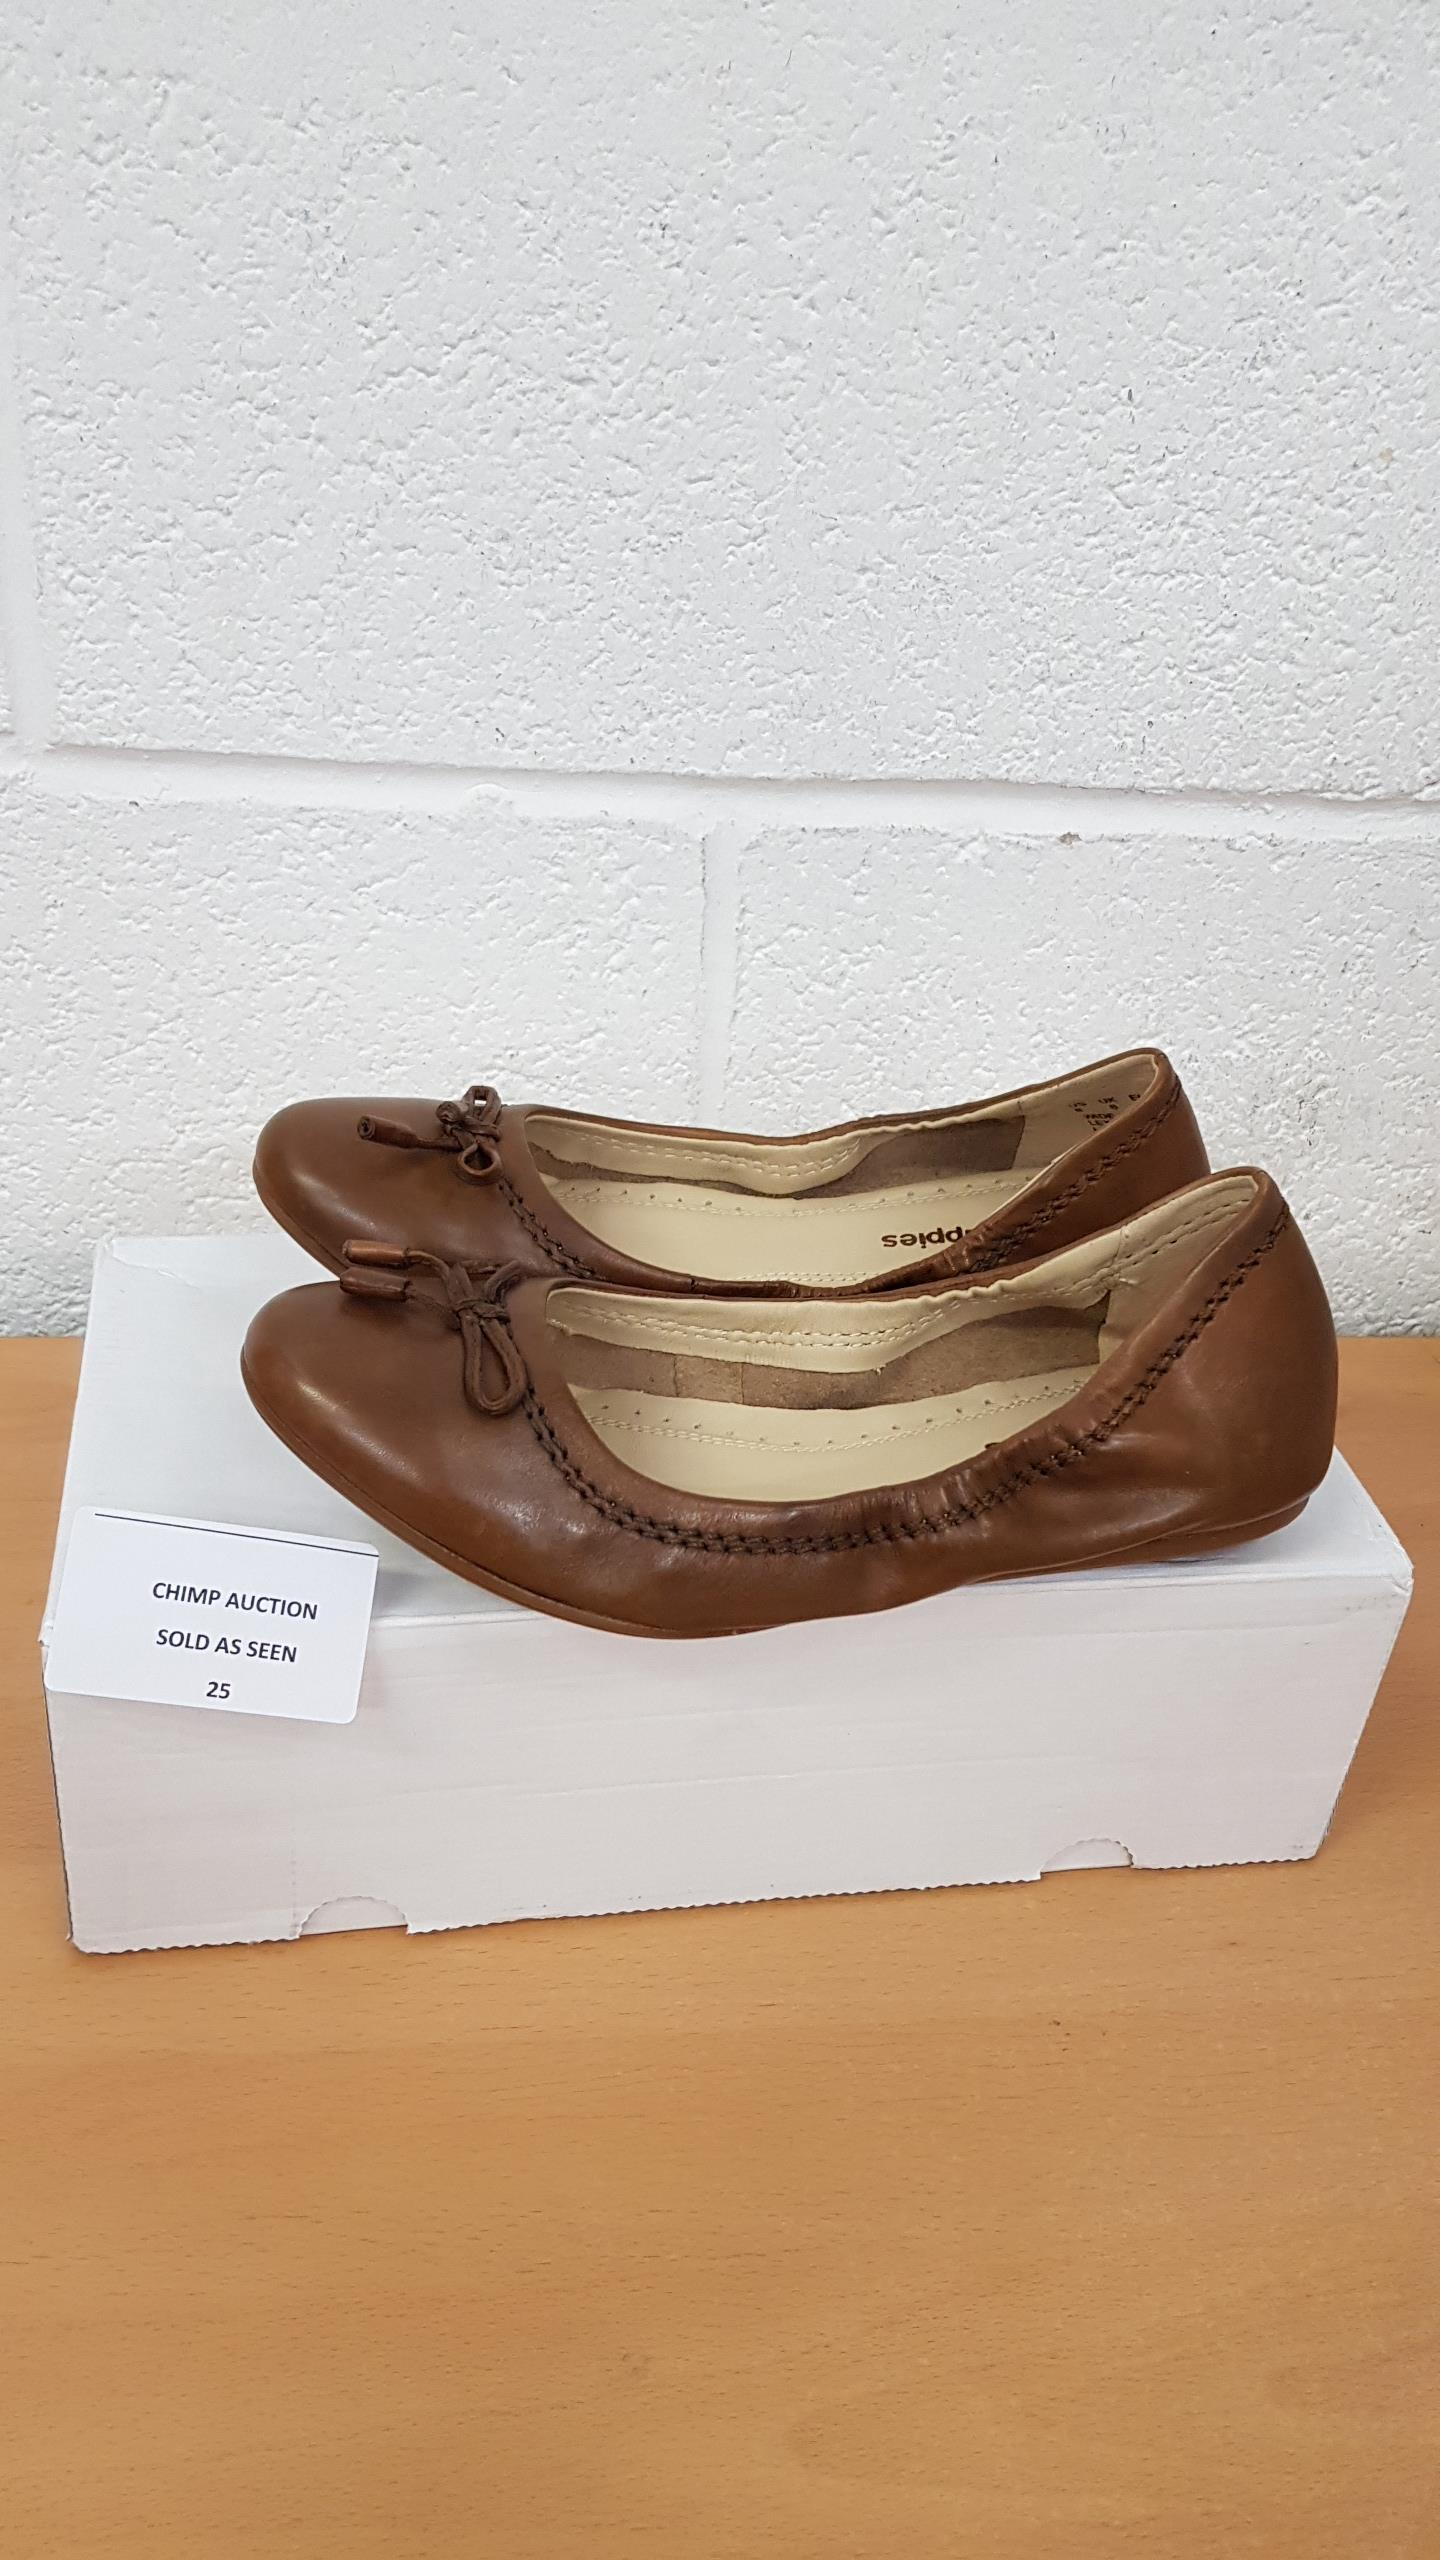 Lot 25 - Hush Puppies leather ladies shoes UK 6